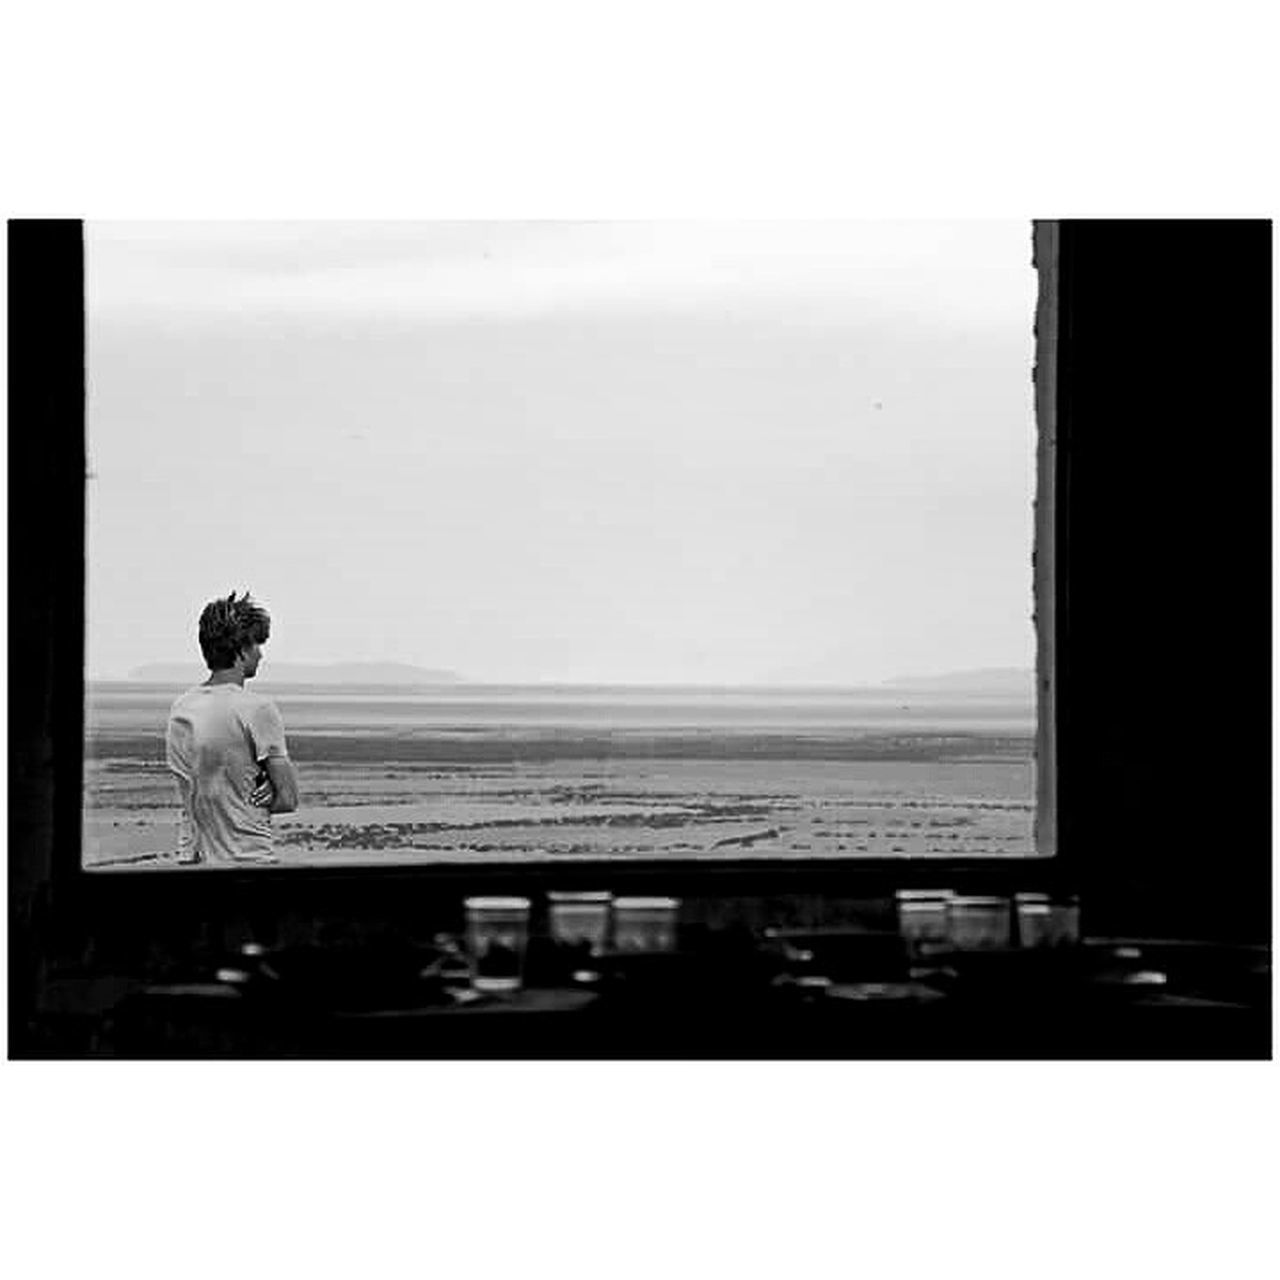 Germanboy Window Blackandwhite Bolivia Uyuni Bolivia Salthotel Nostalgic